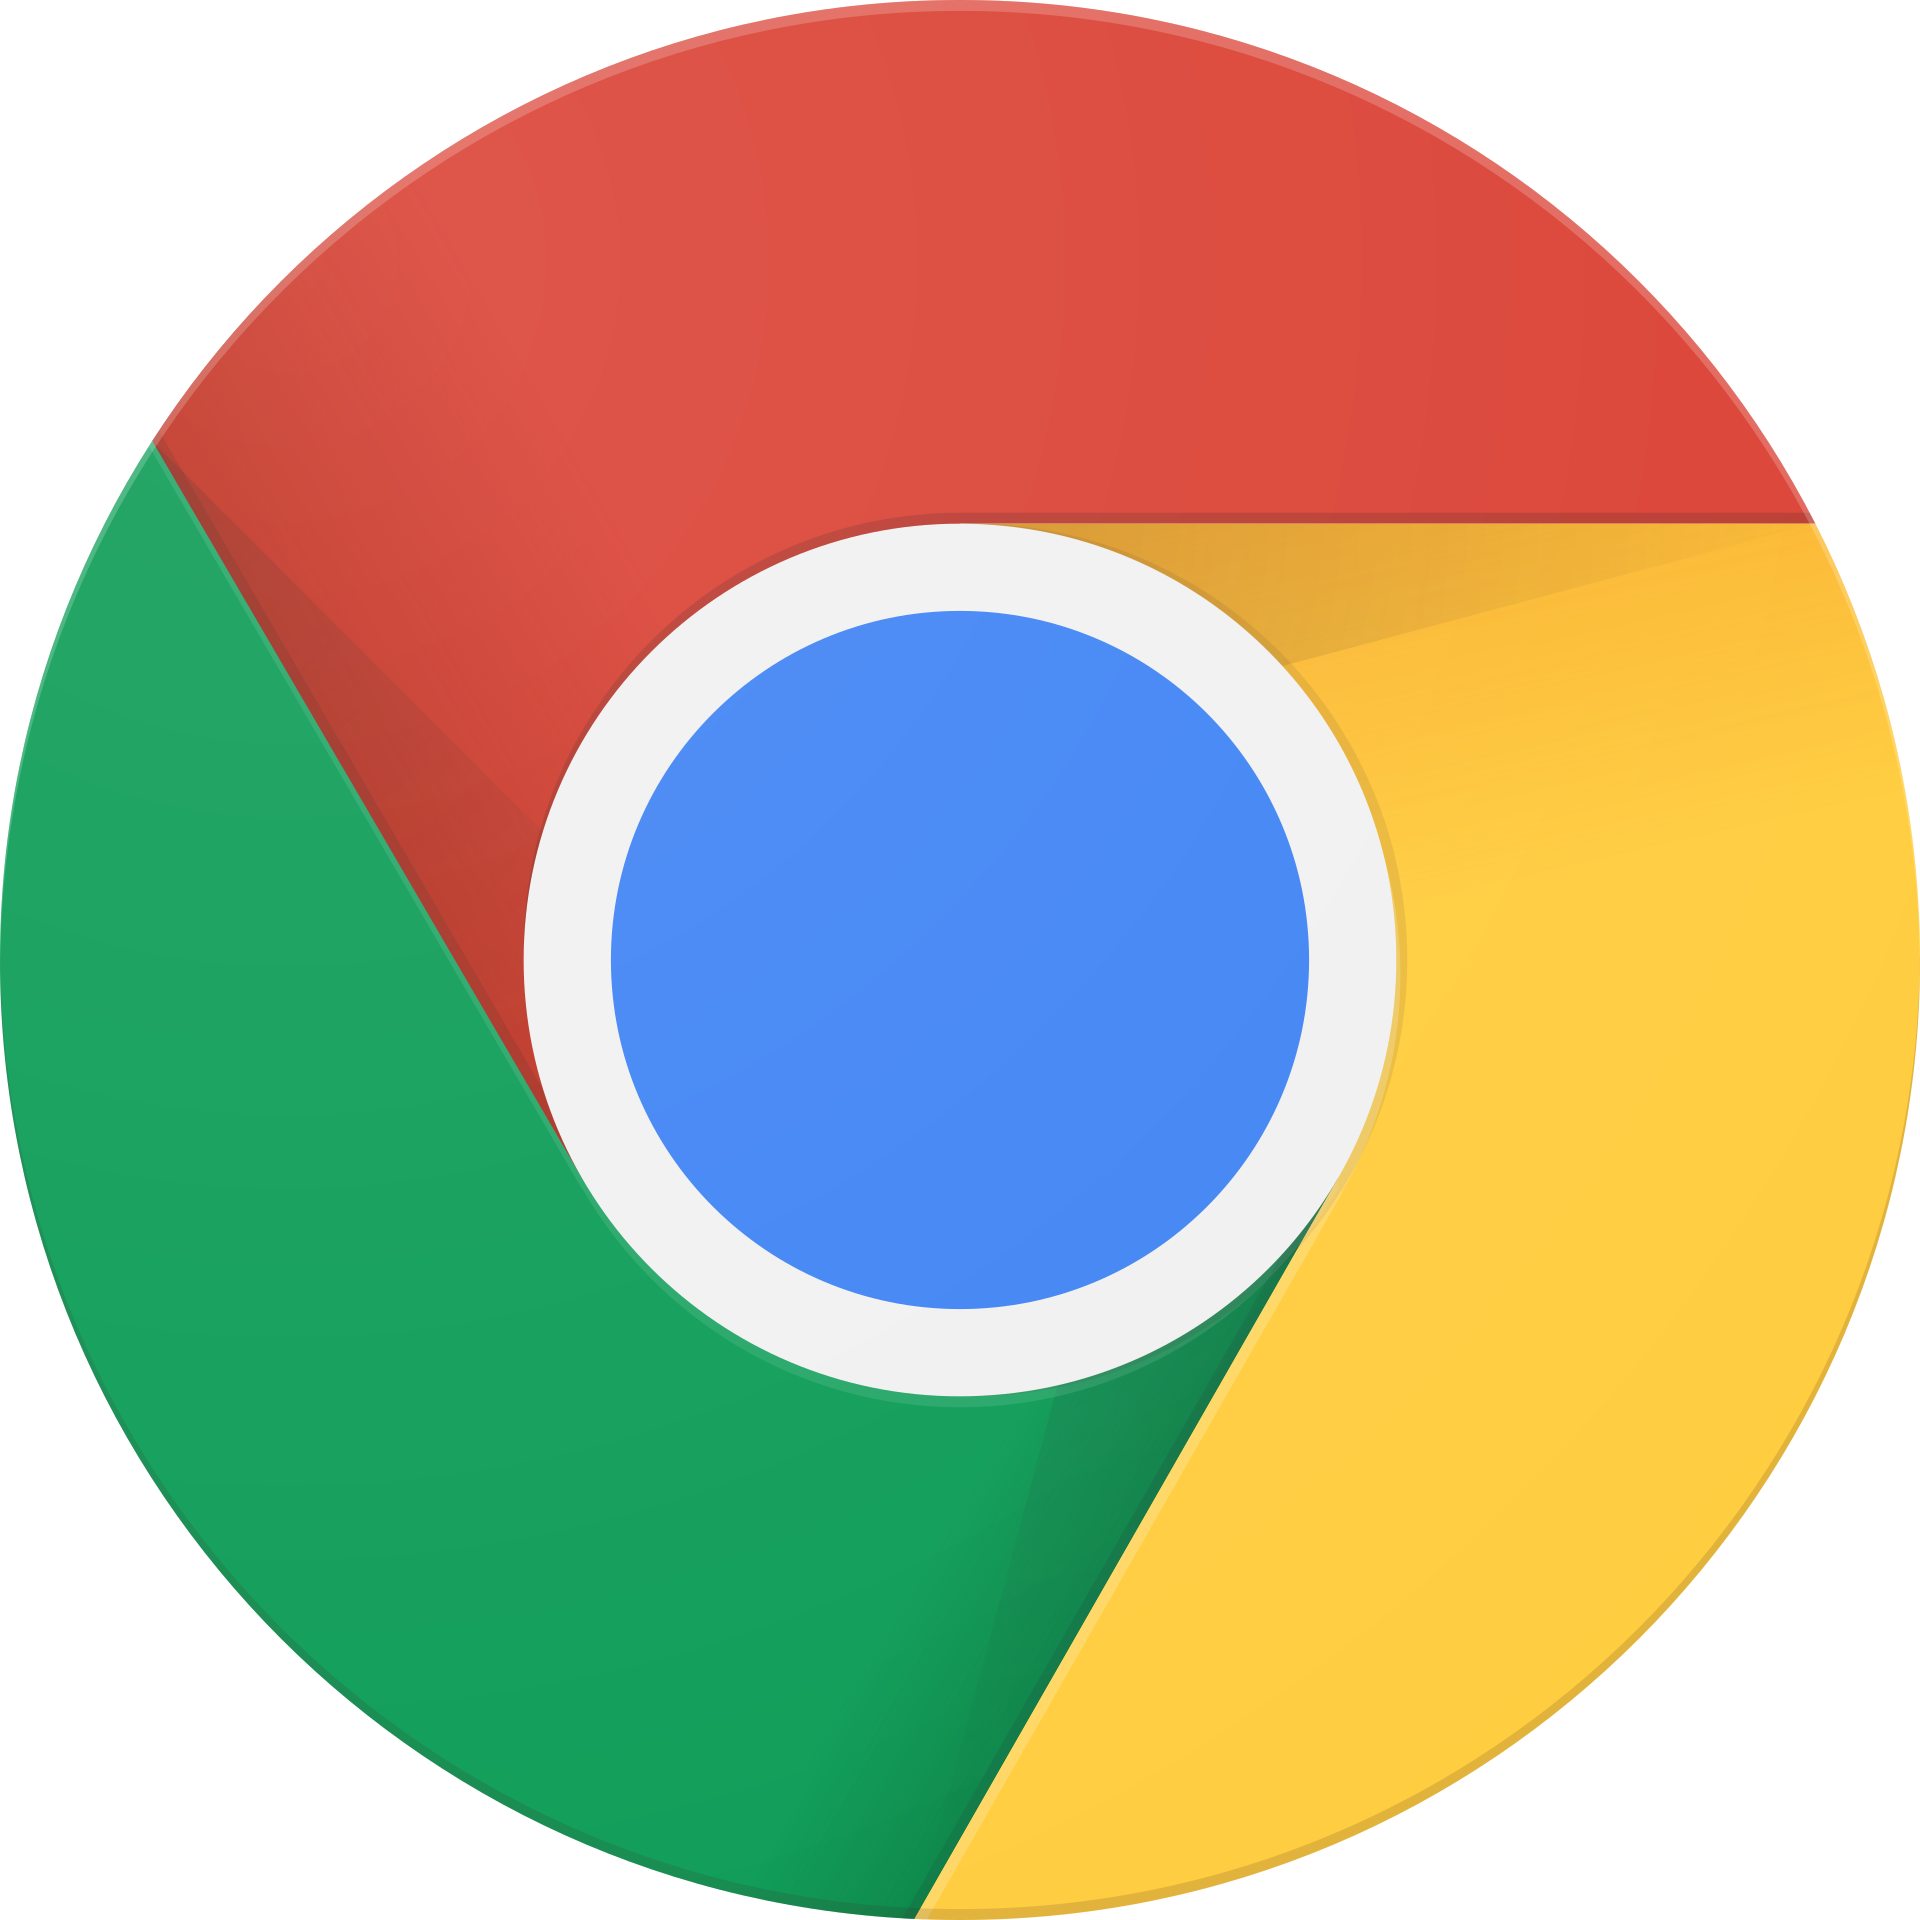 File:GooglechromeLogo.png